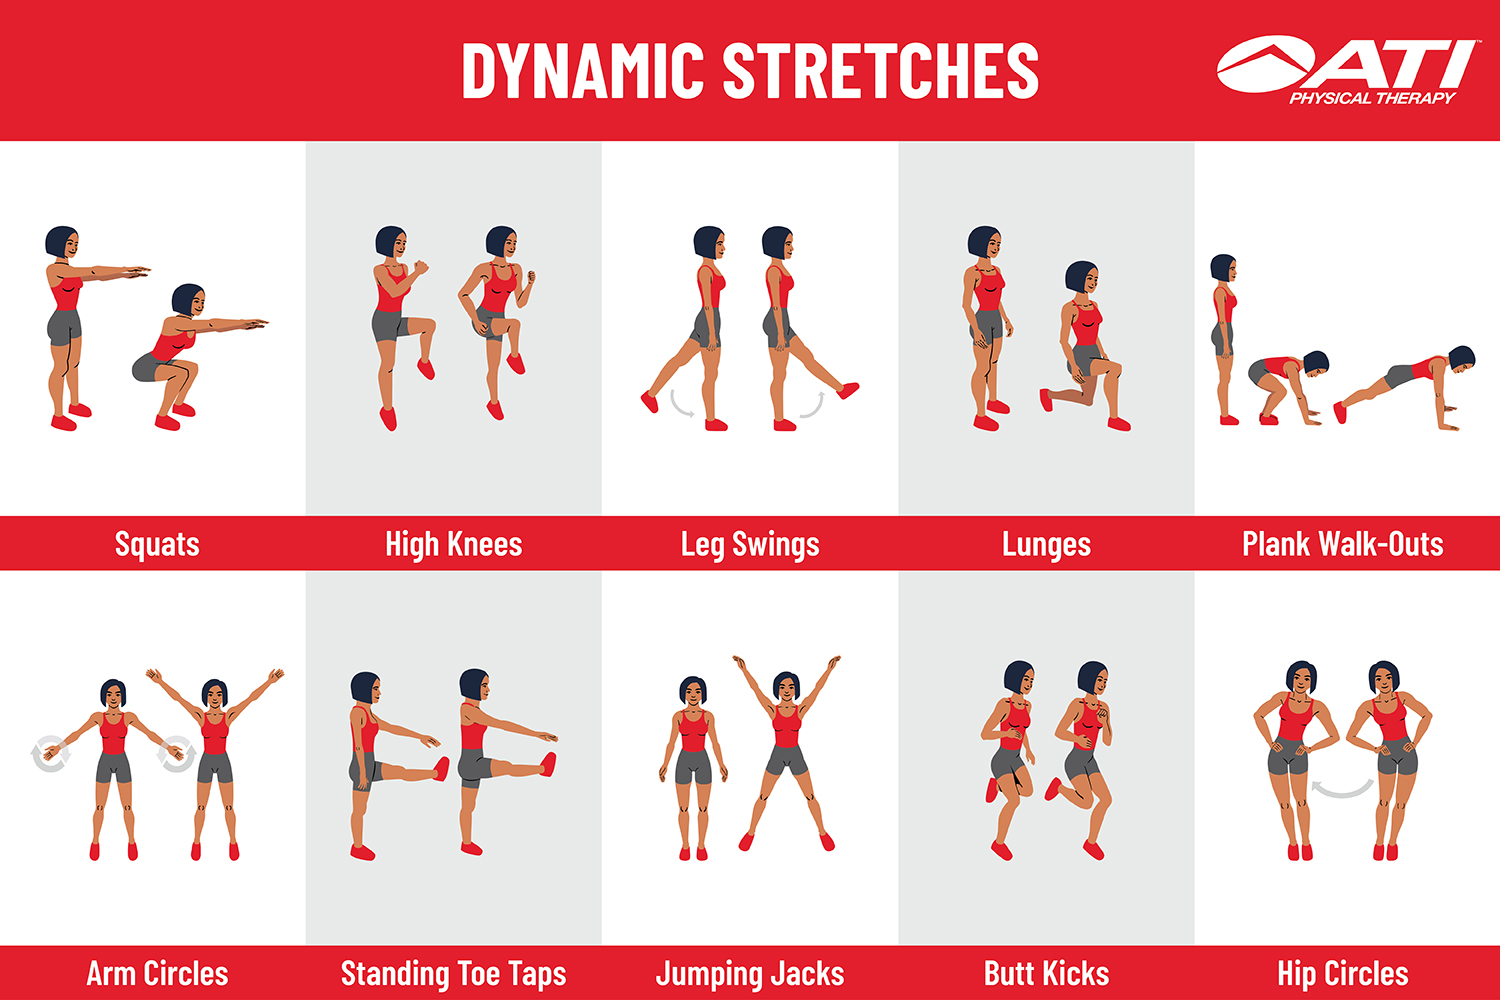 Dynamic stretching exercises with pictures